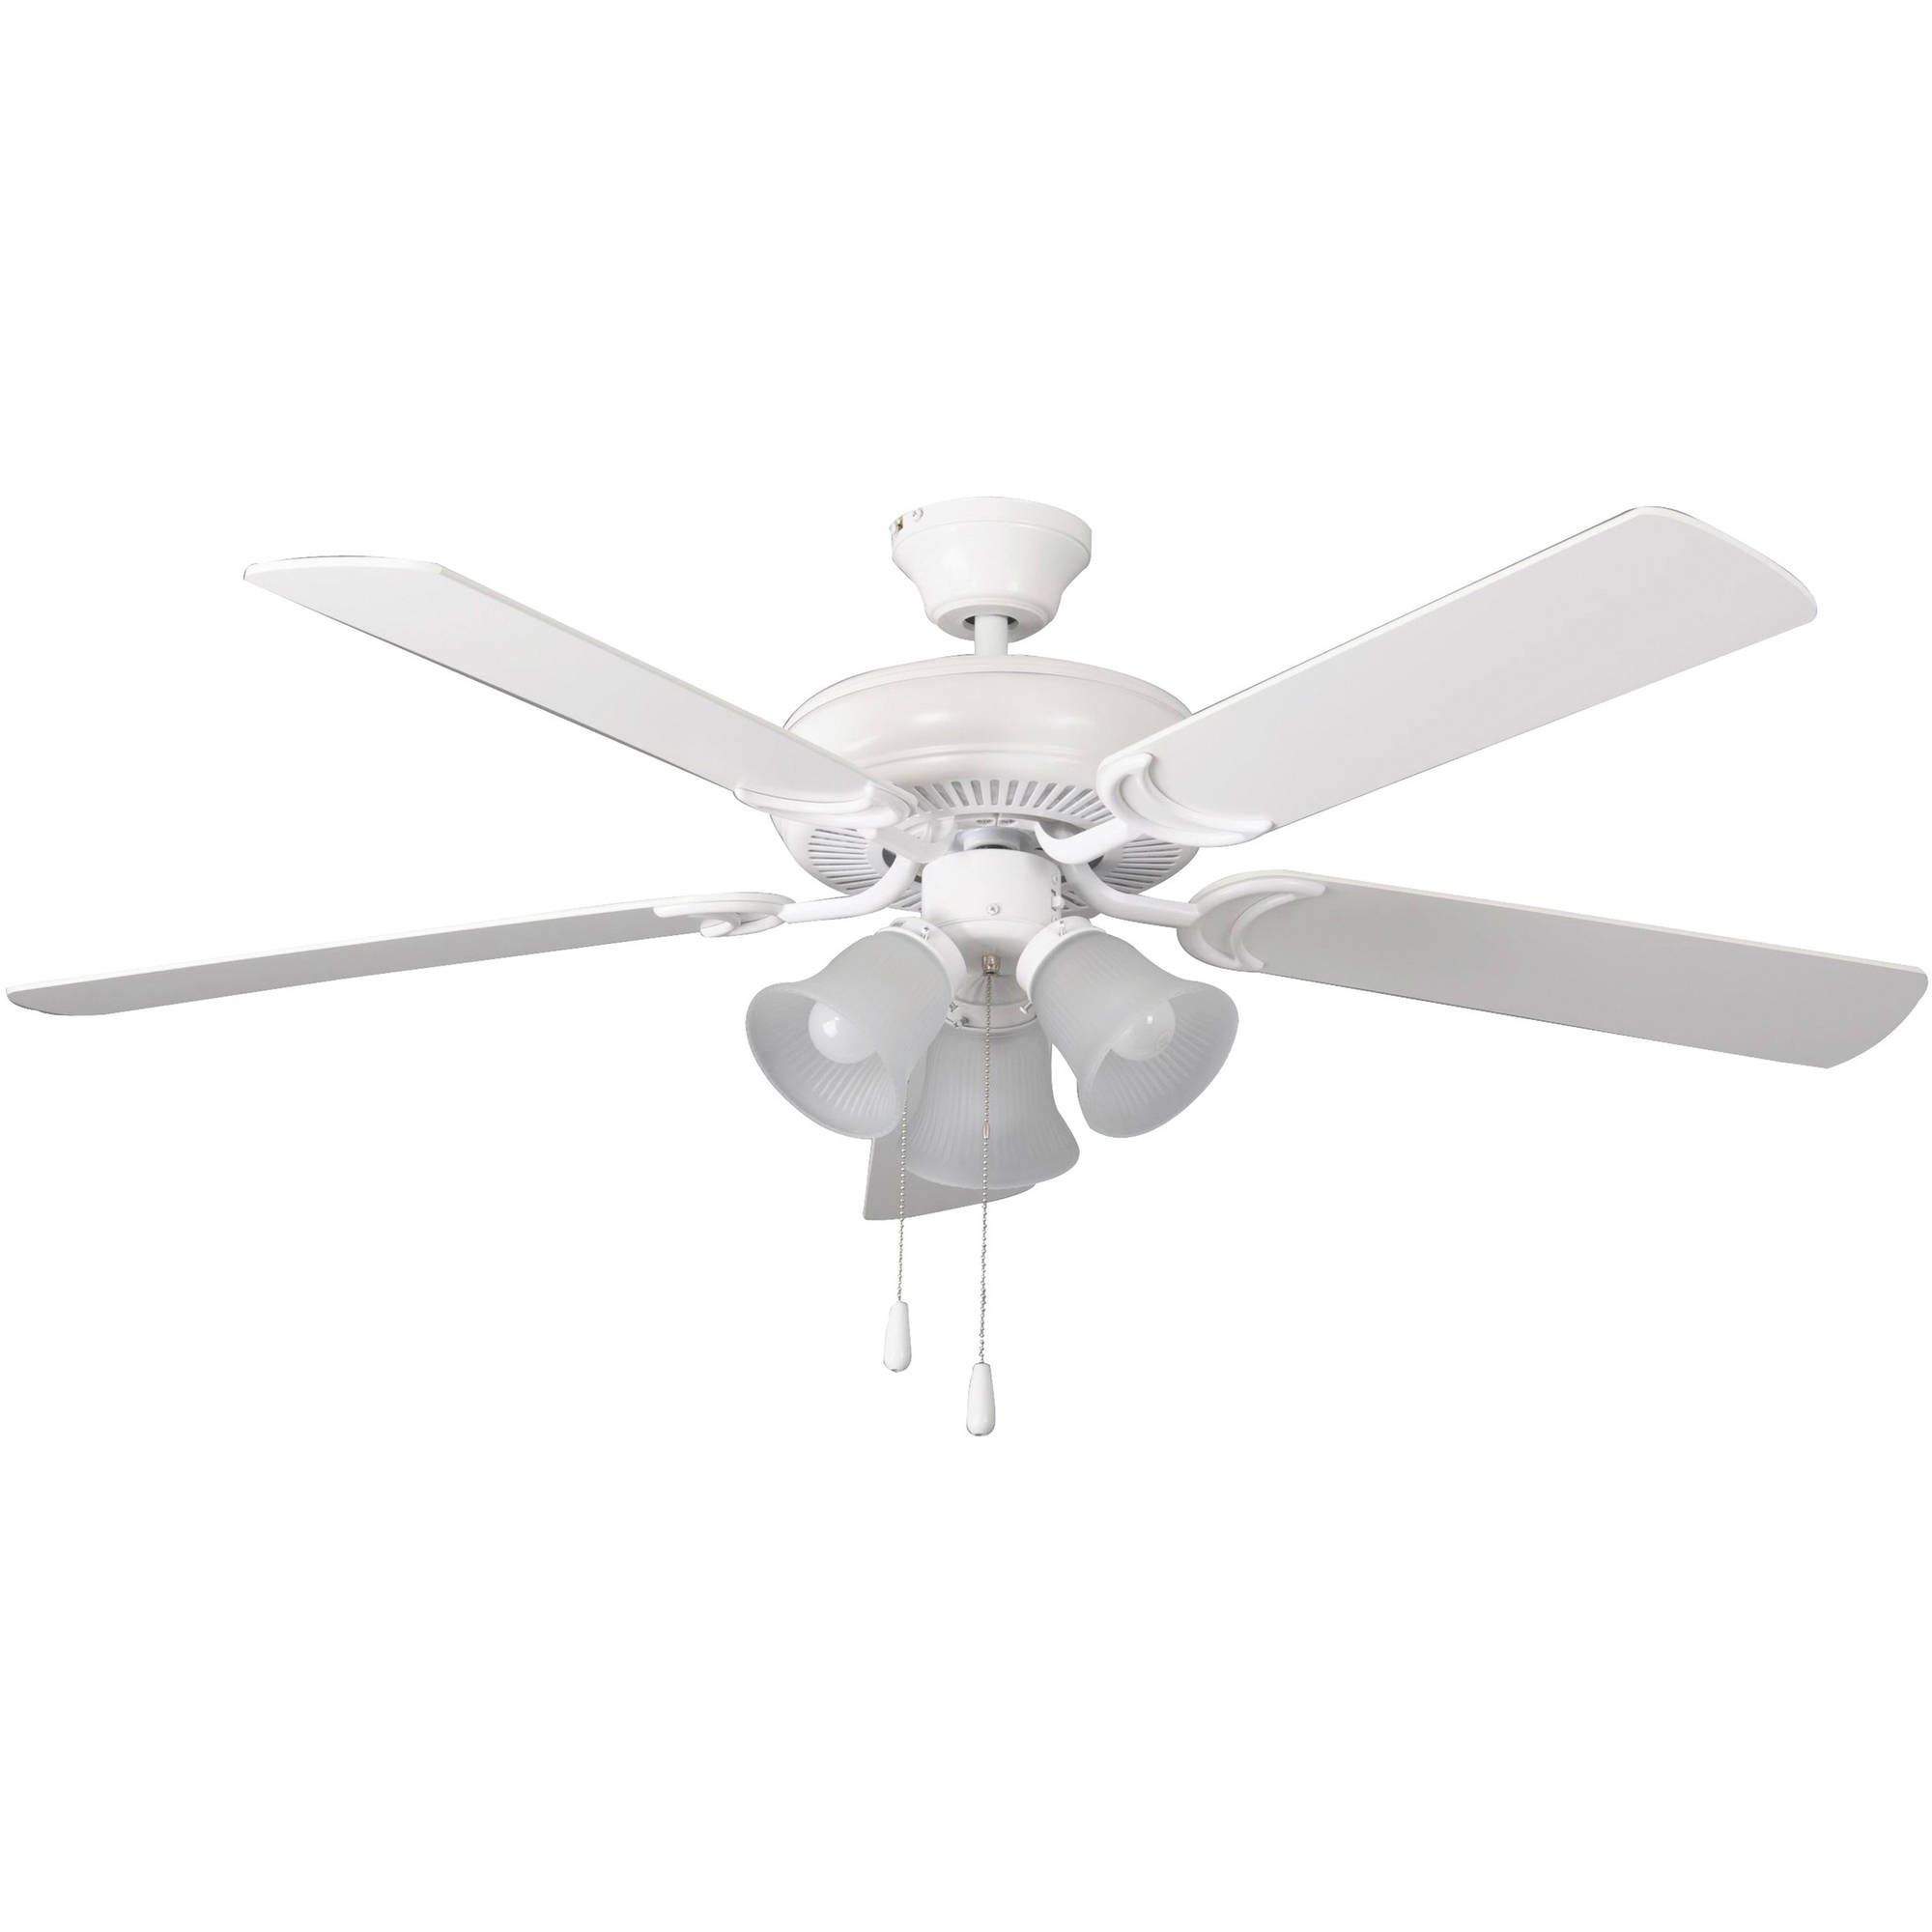 """Litex Industries Decorator's Choice 52"""" Dual-Mount Ceiling Fan, Matte White Finish, 3-Light Kit with 5 Blades"""